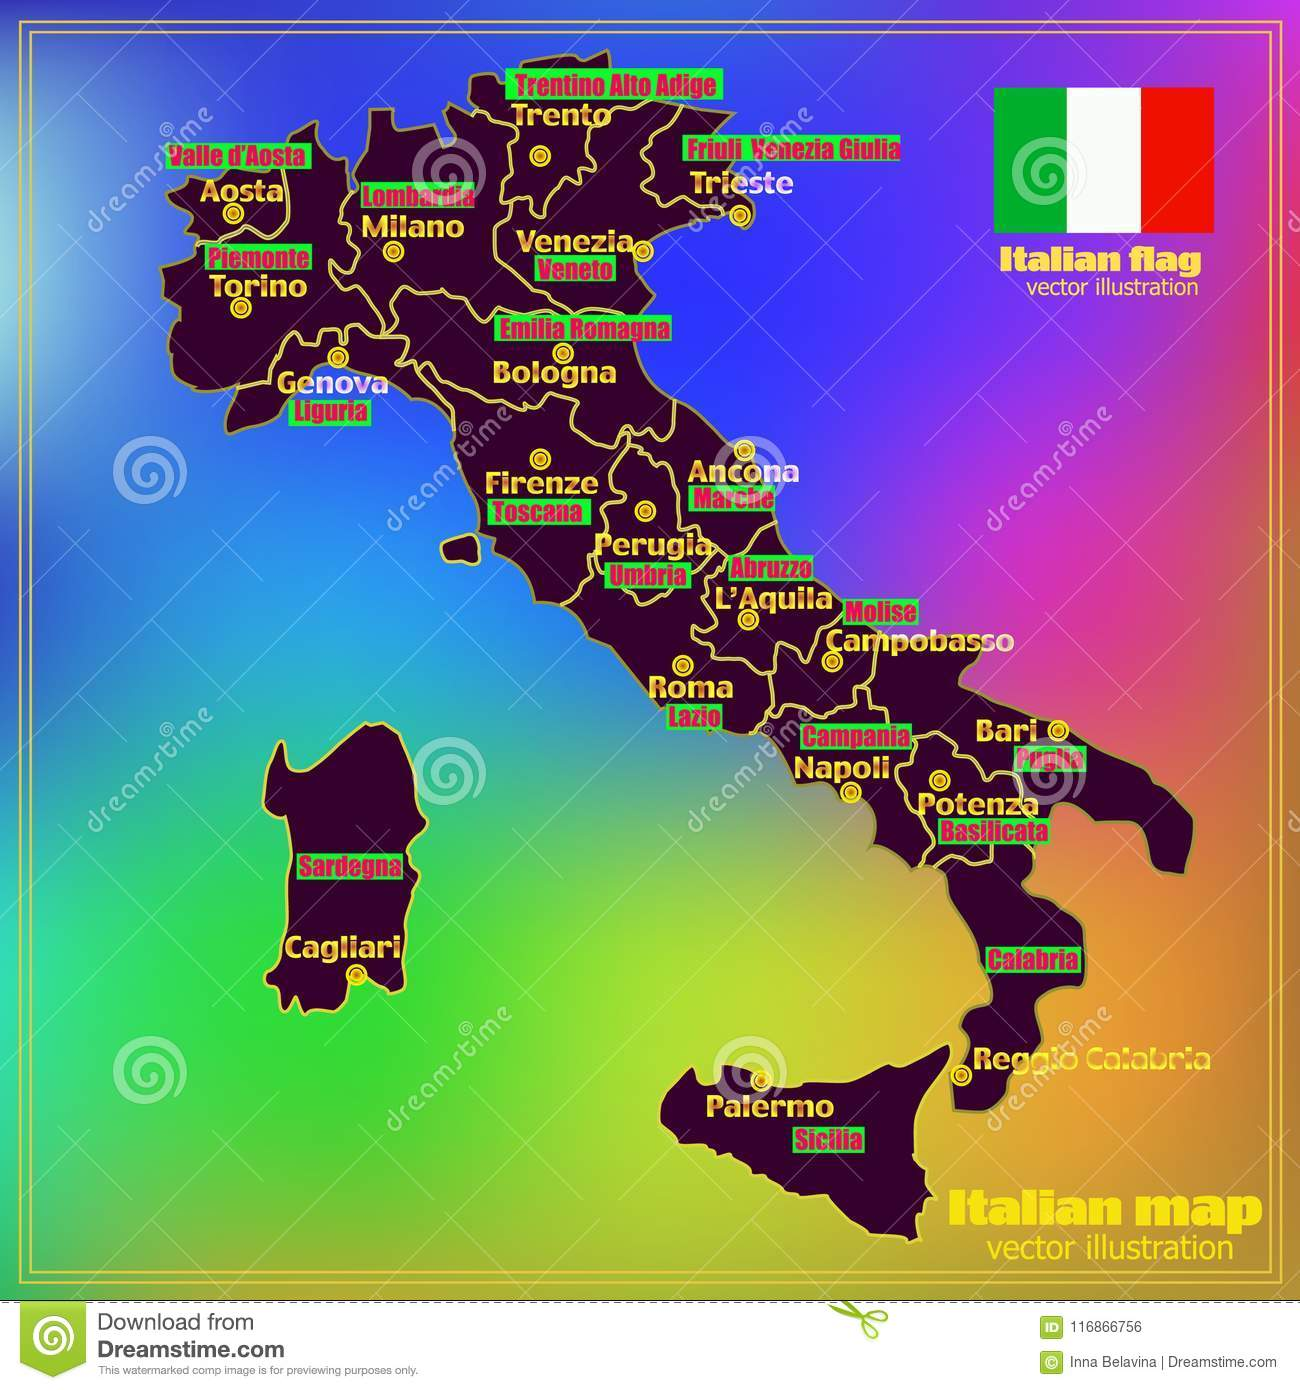 Map Showing Regions Of Italy.Italy Map With Italian Regions Vector Stock Vector Illustration